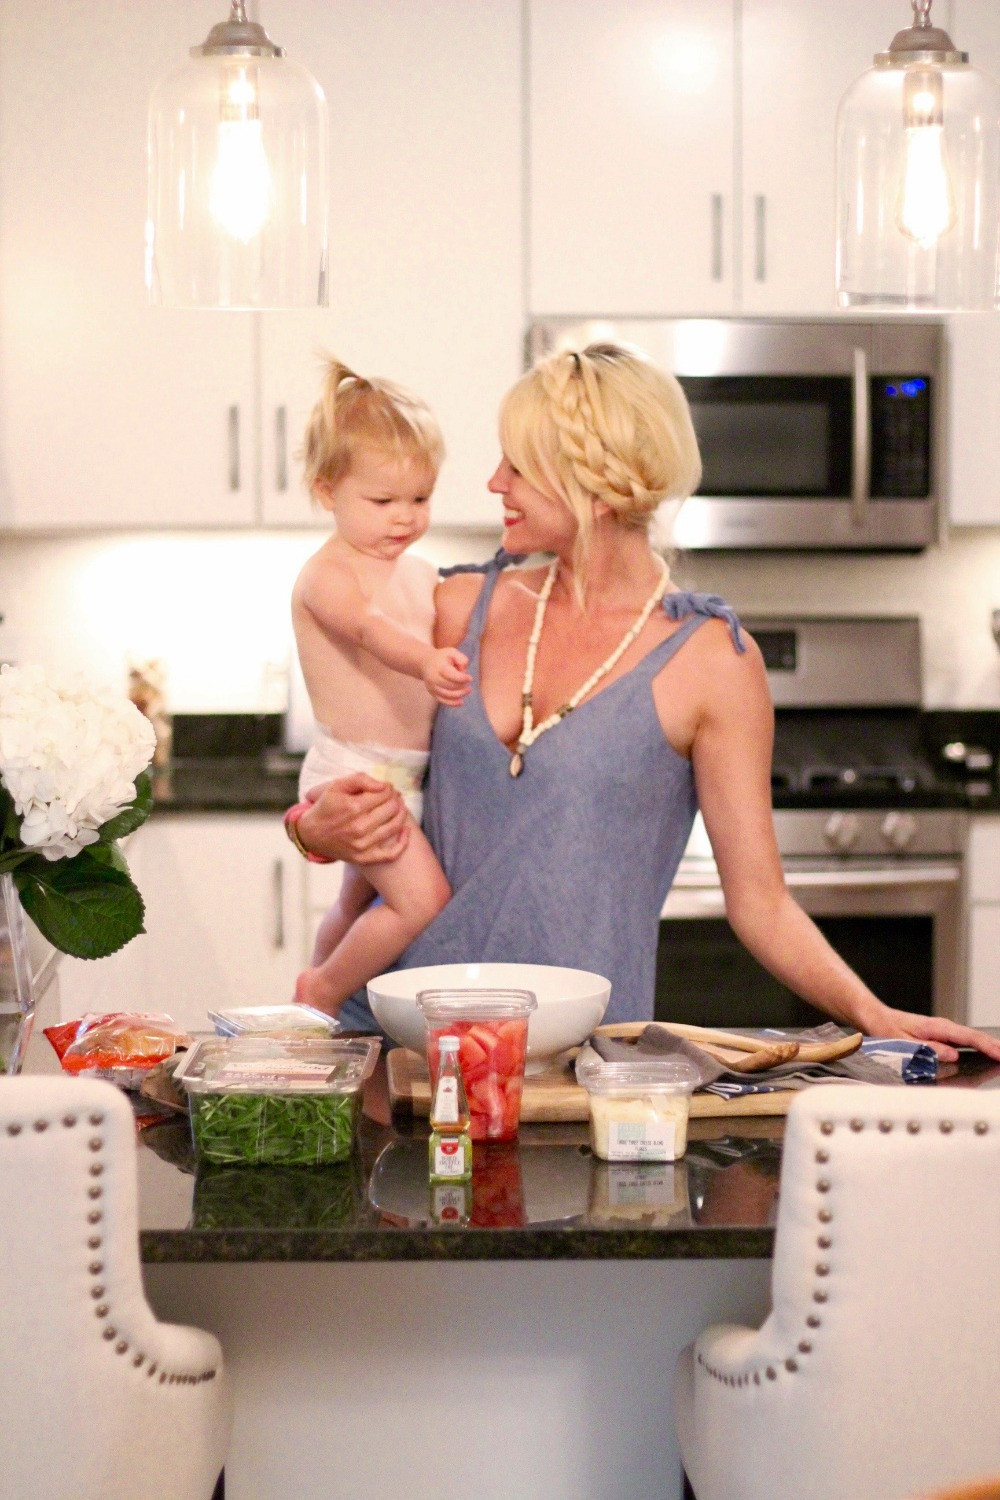 Mom Brooke Wiliams hold daughter Harlow as they cook together in their kitchen